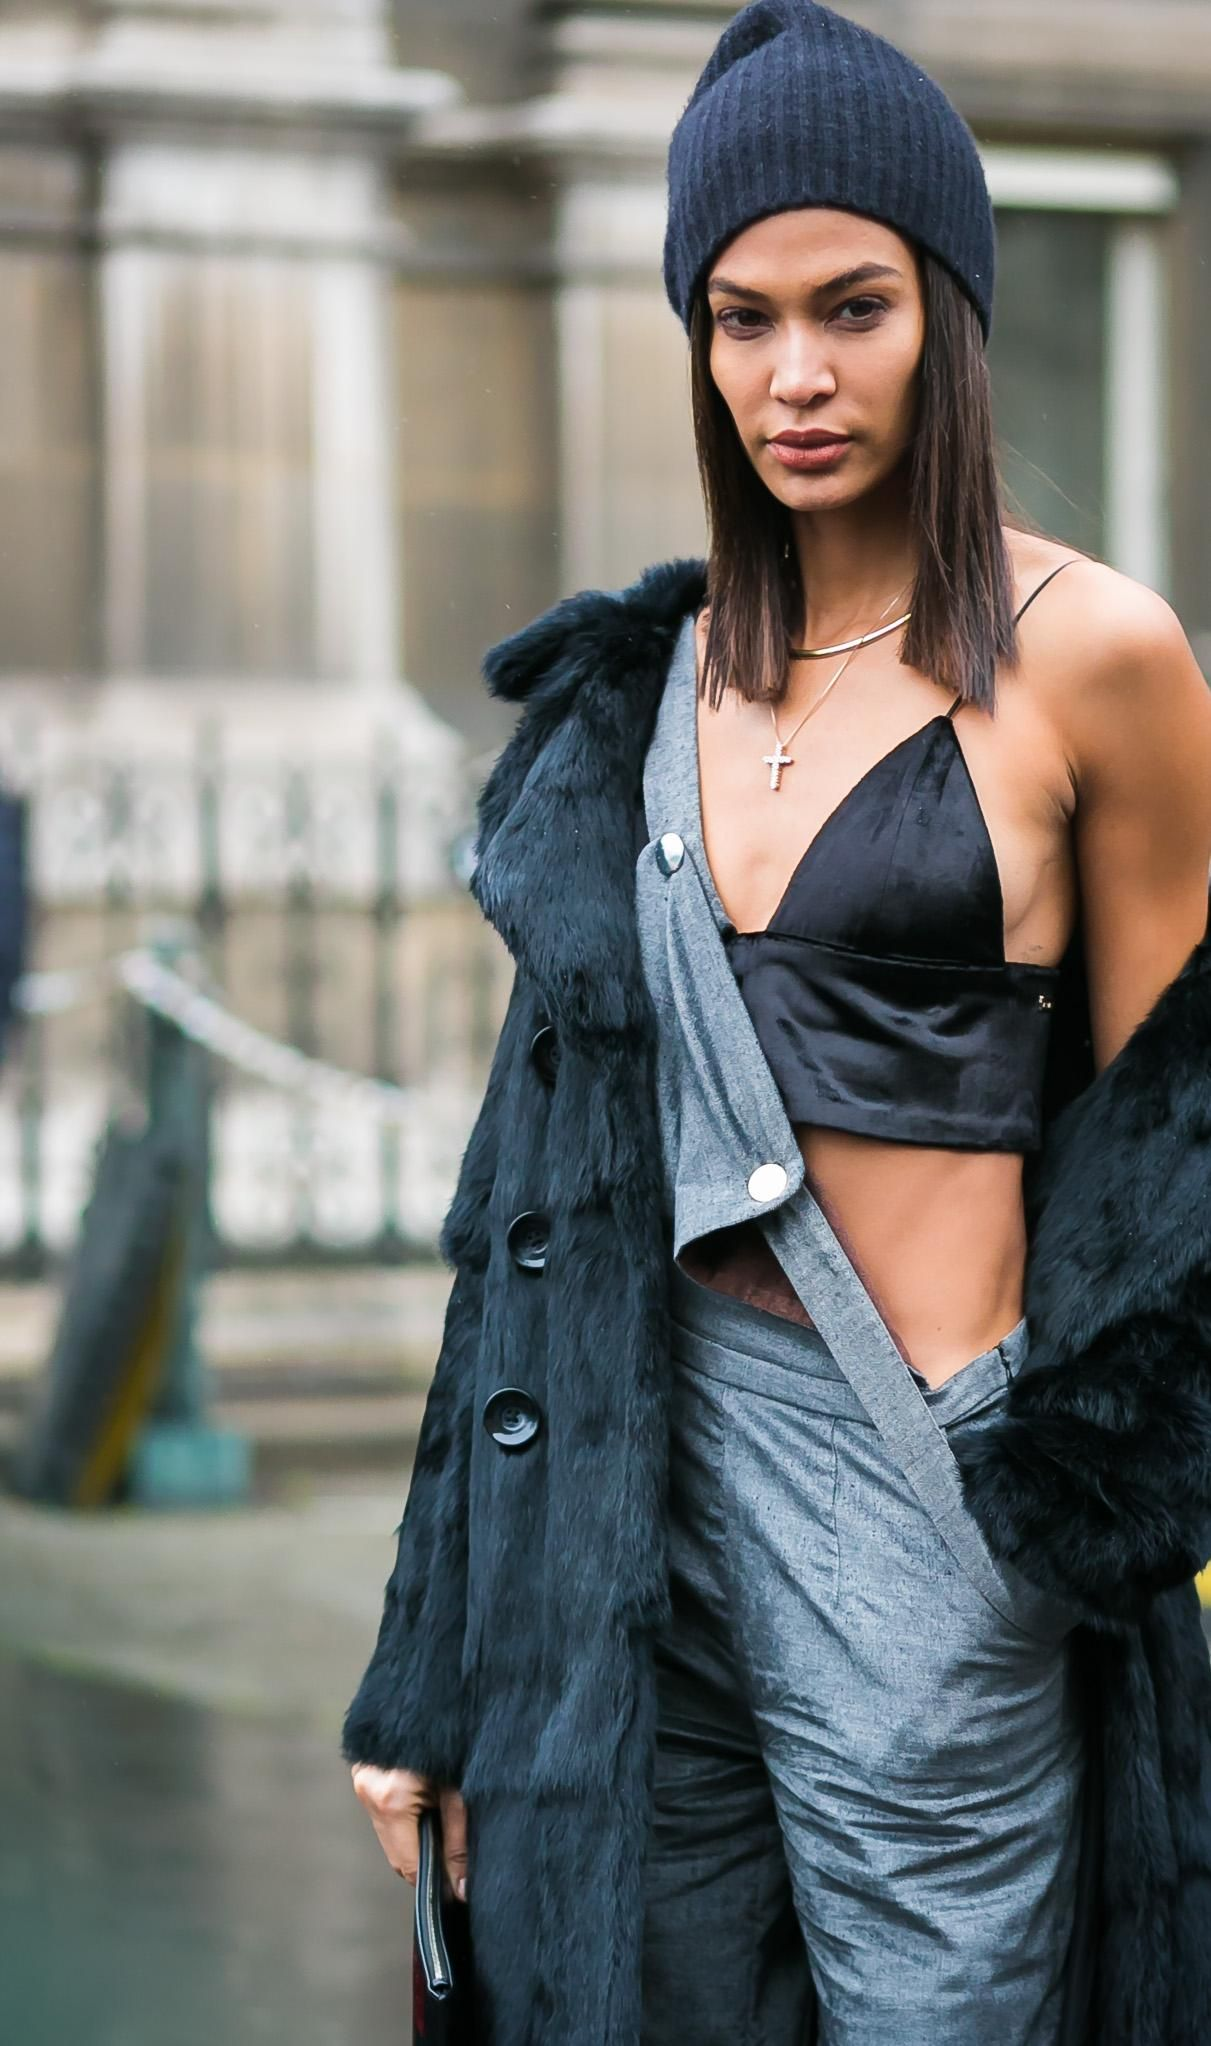 The 9 Best Celebrity Street Style Moments From Fall 2017 Fashion ...